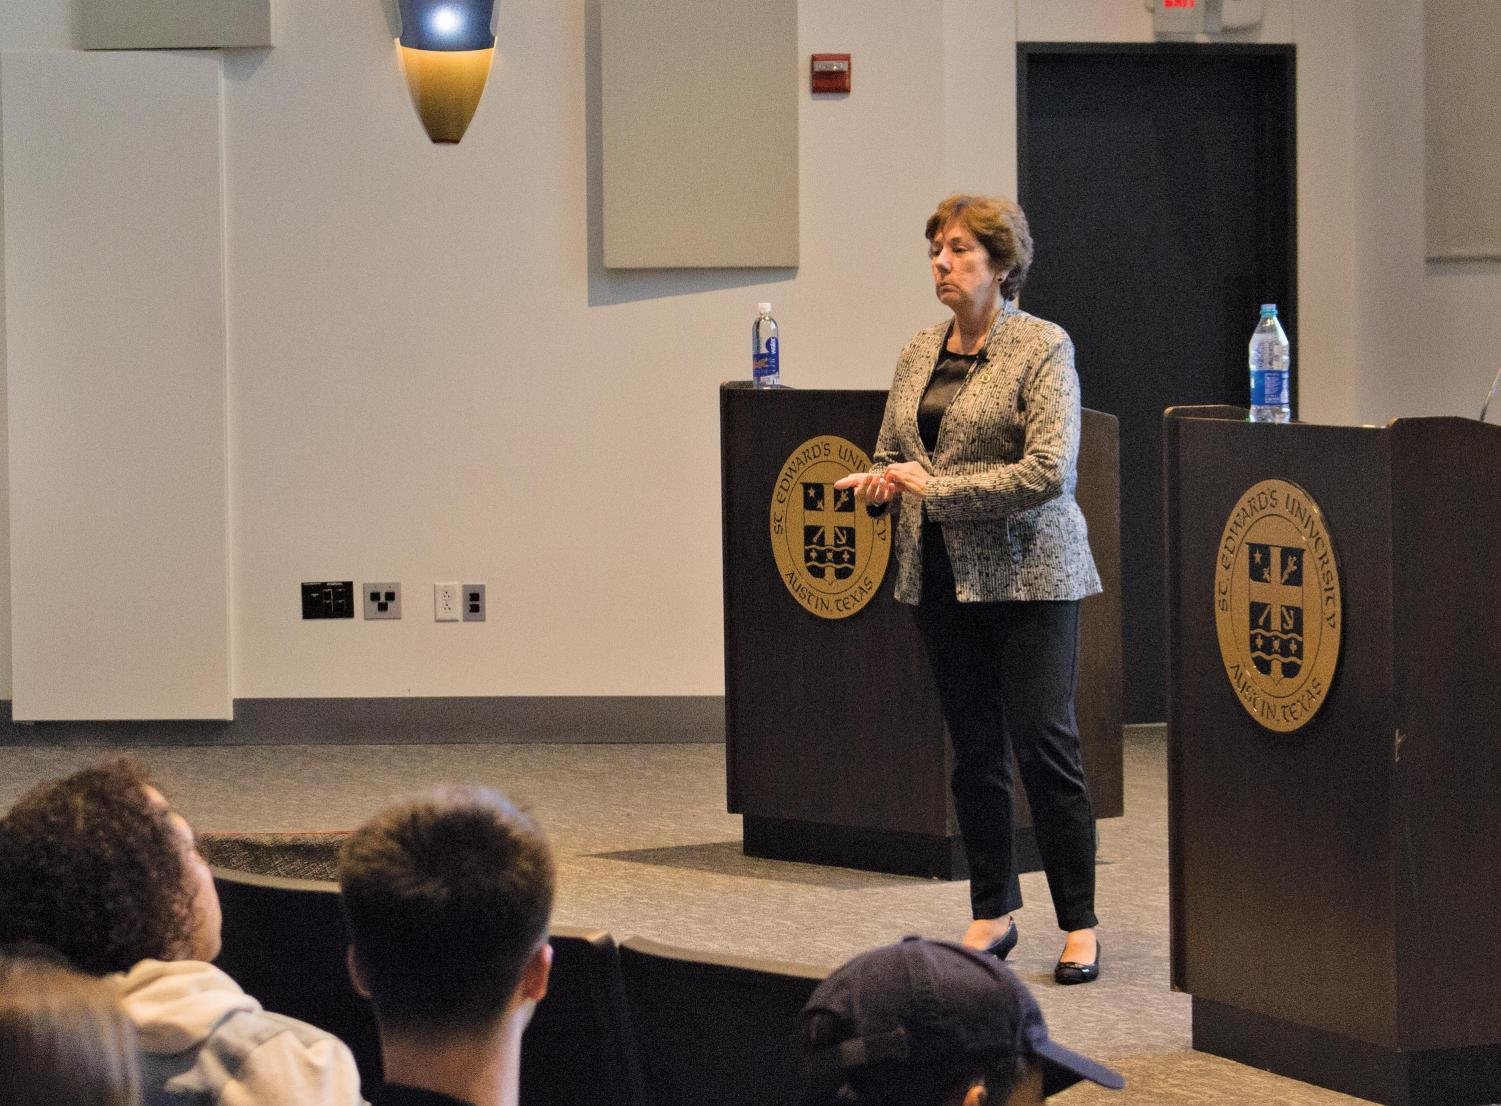 """Eder speaks to students about her theory of an """"information apocalypse"""" as it relates to how news is spread. The event was held in Jones Auditorium in Ragsdale Center."""